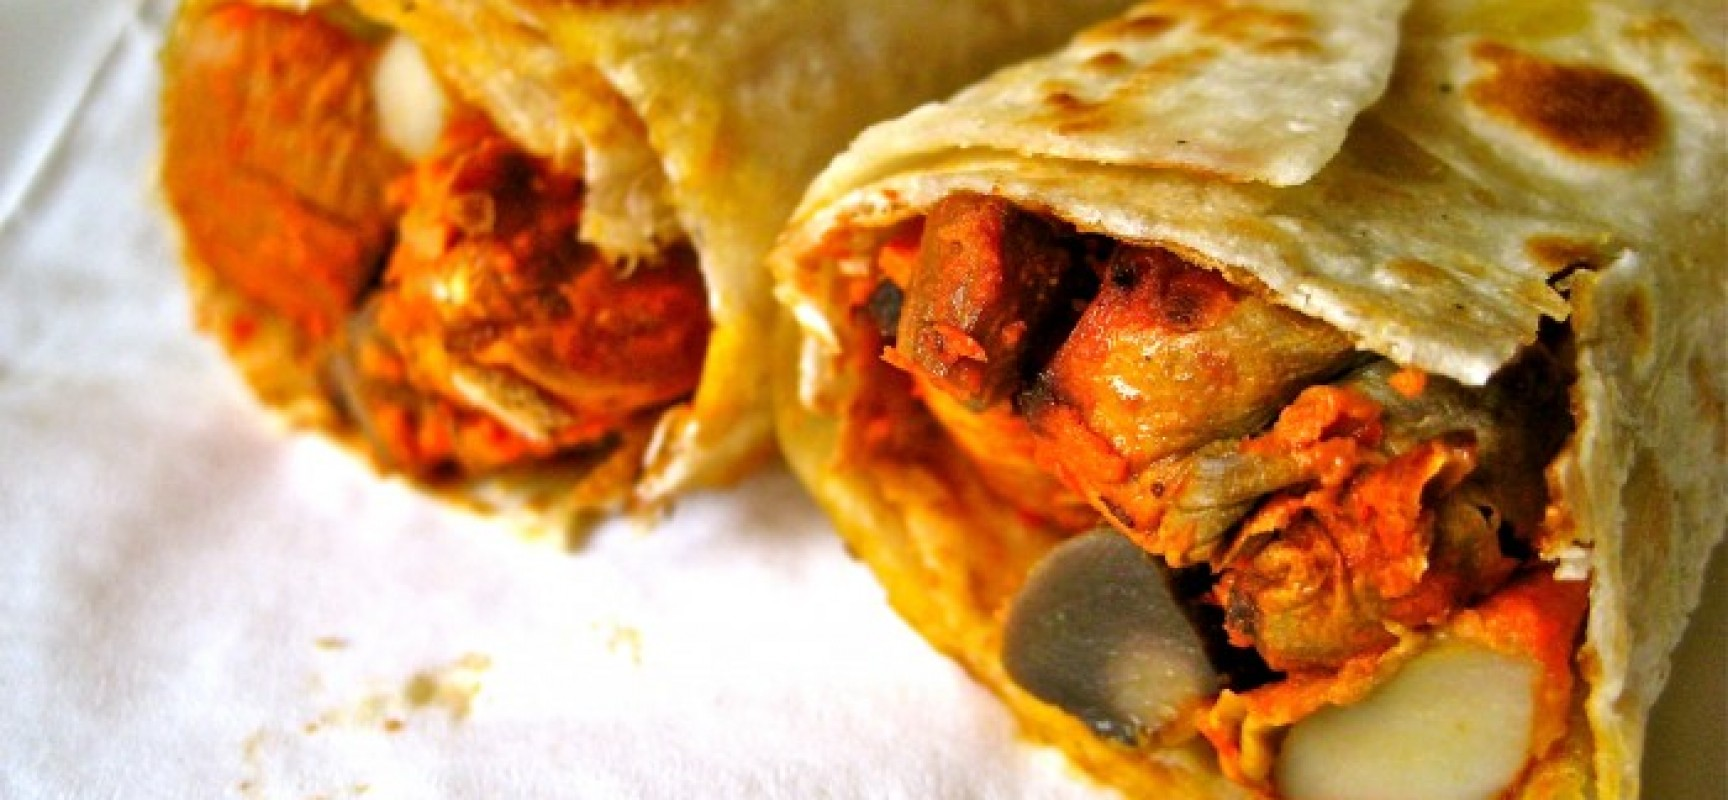 Kathi Roll: A History